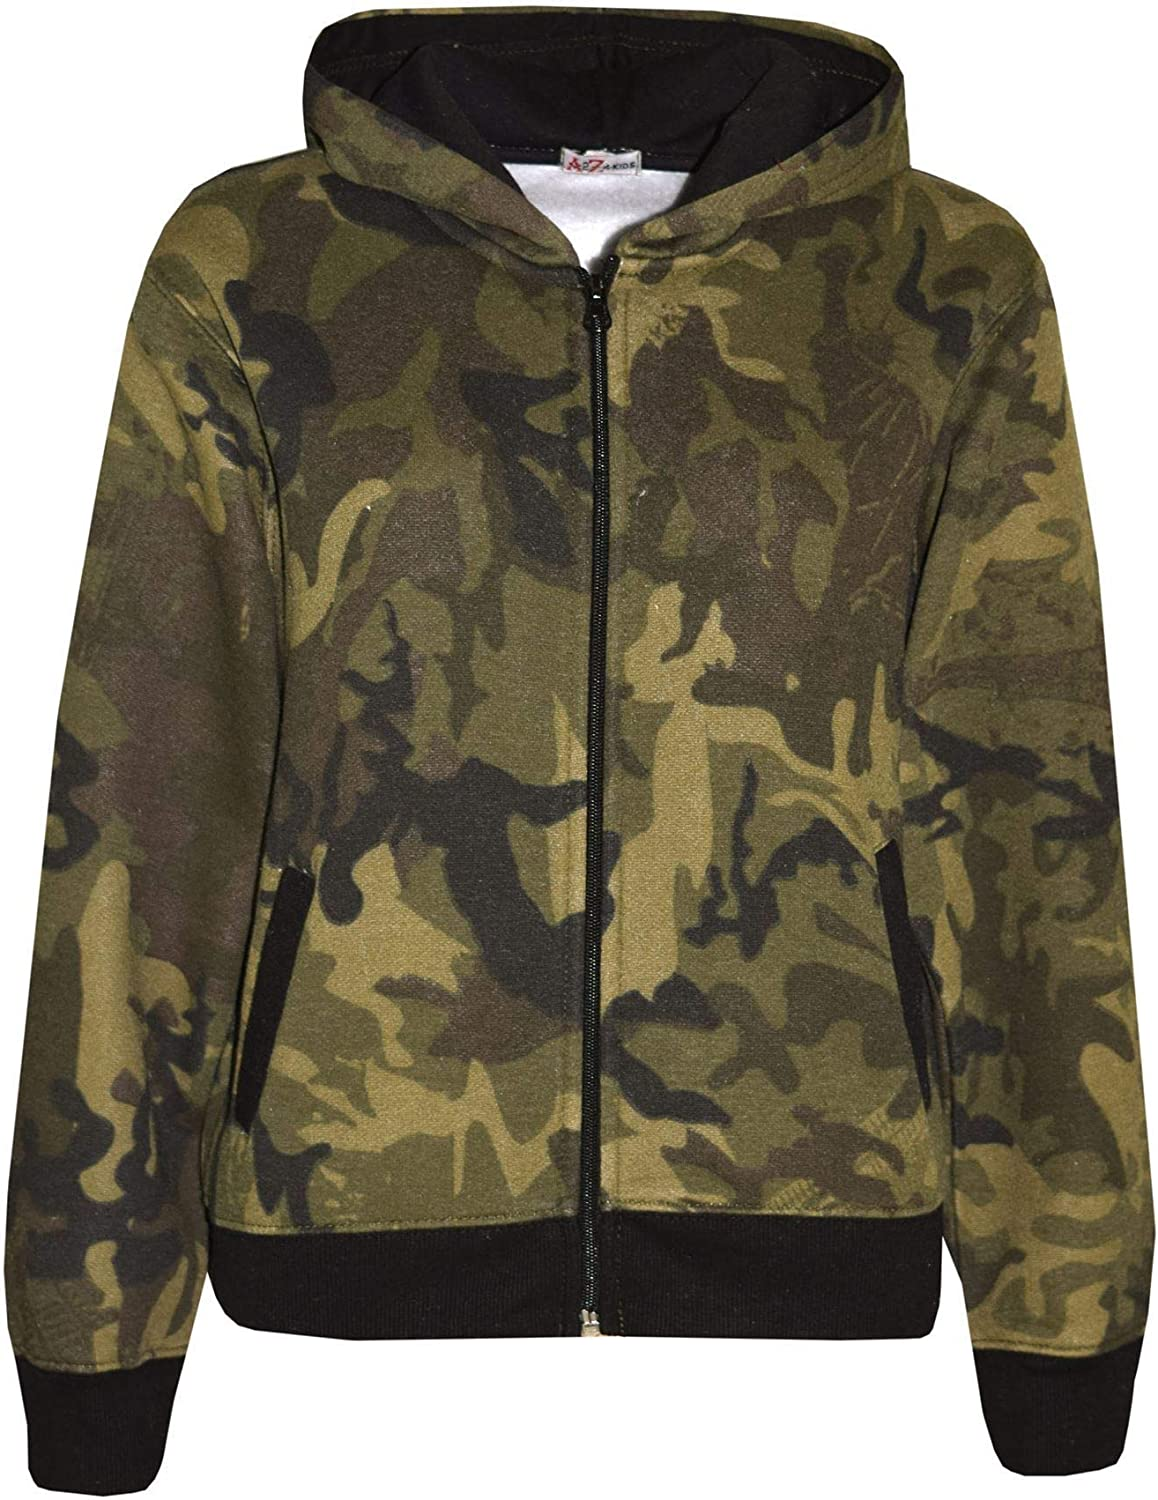 A2Z 4 Kids/® Kids Tracksuit Boys Girls Designers Green Camouflage Print Zipped Top Hoodie /& Botom Jogging Suit Age 5 6 7 8 9 10 11 12 13 Years